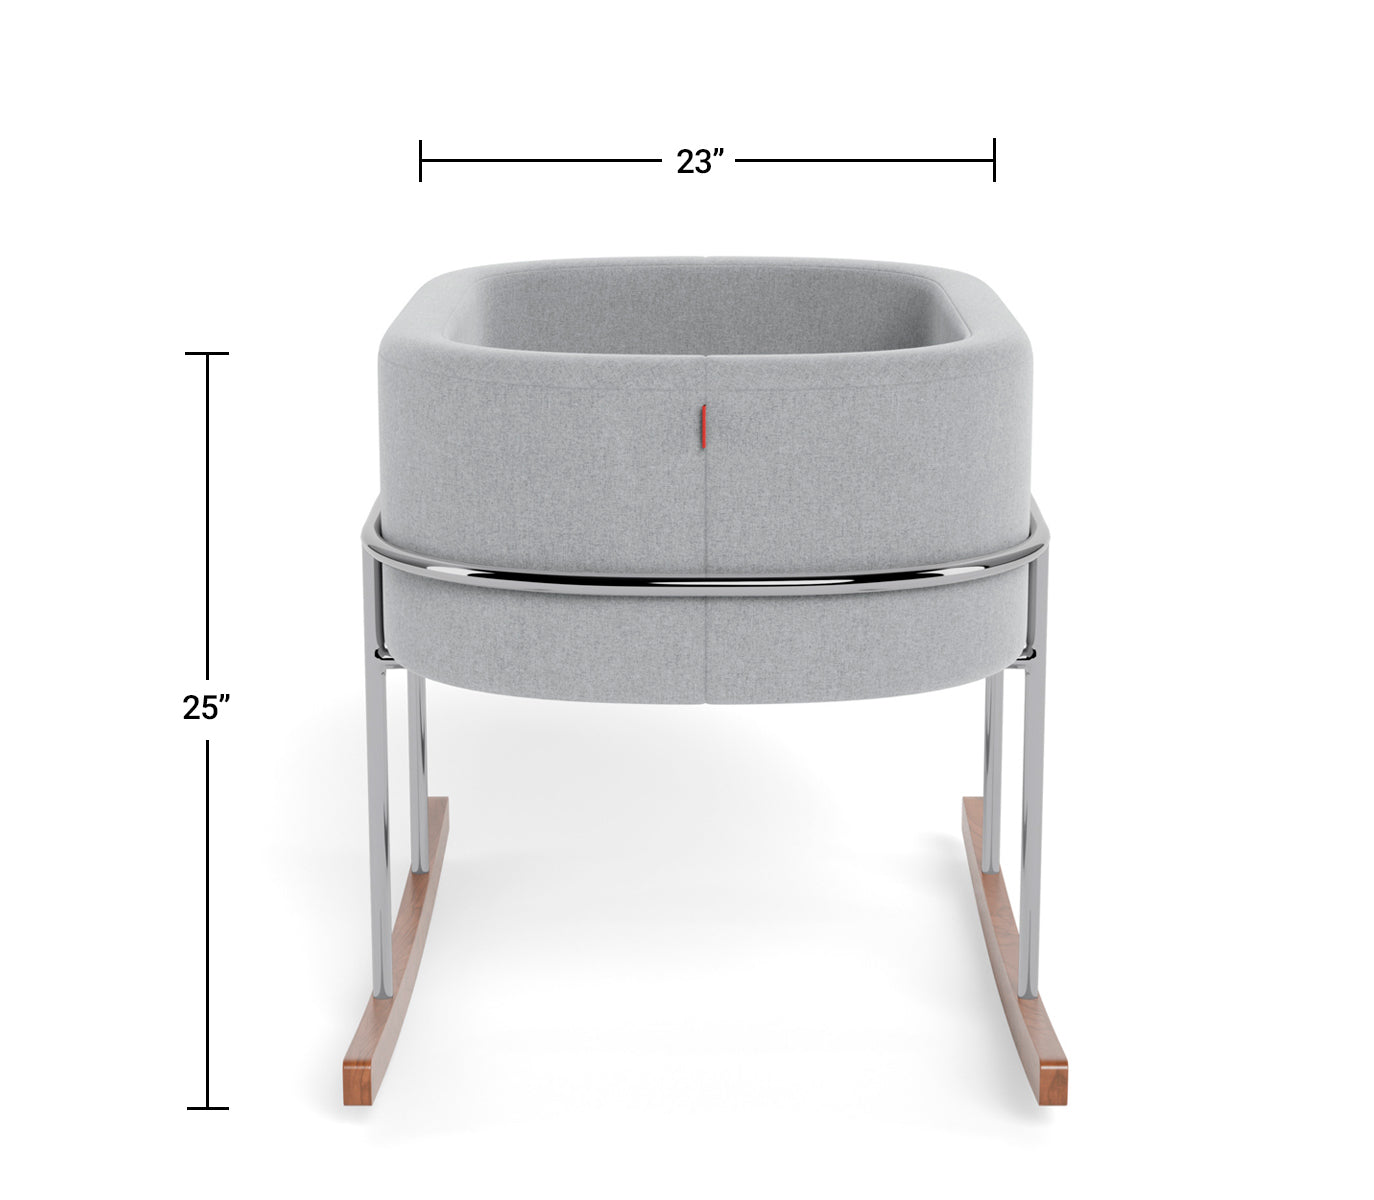 Modern Nursery Rockwell Bassinet Dimensions Side View